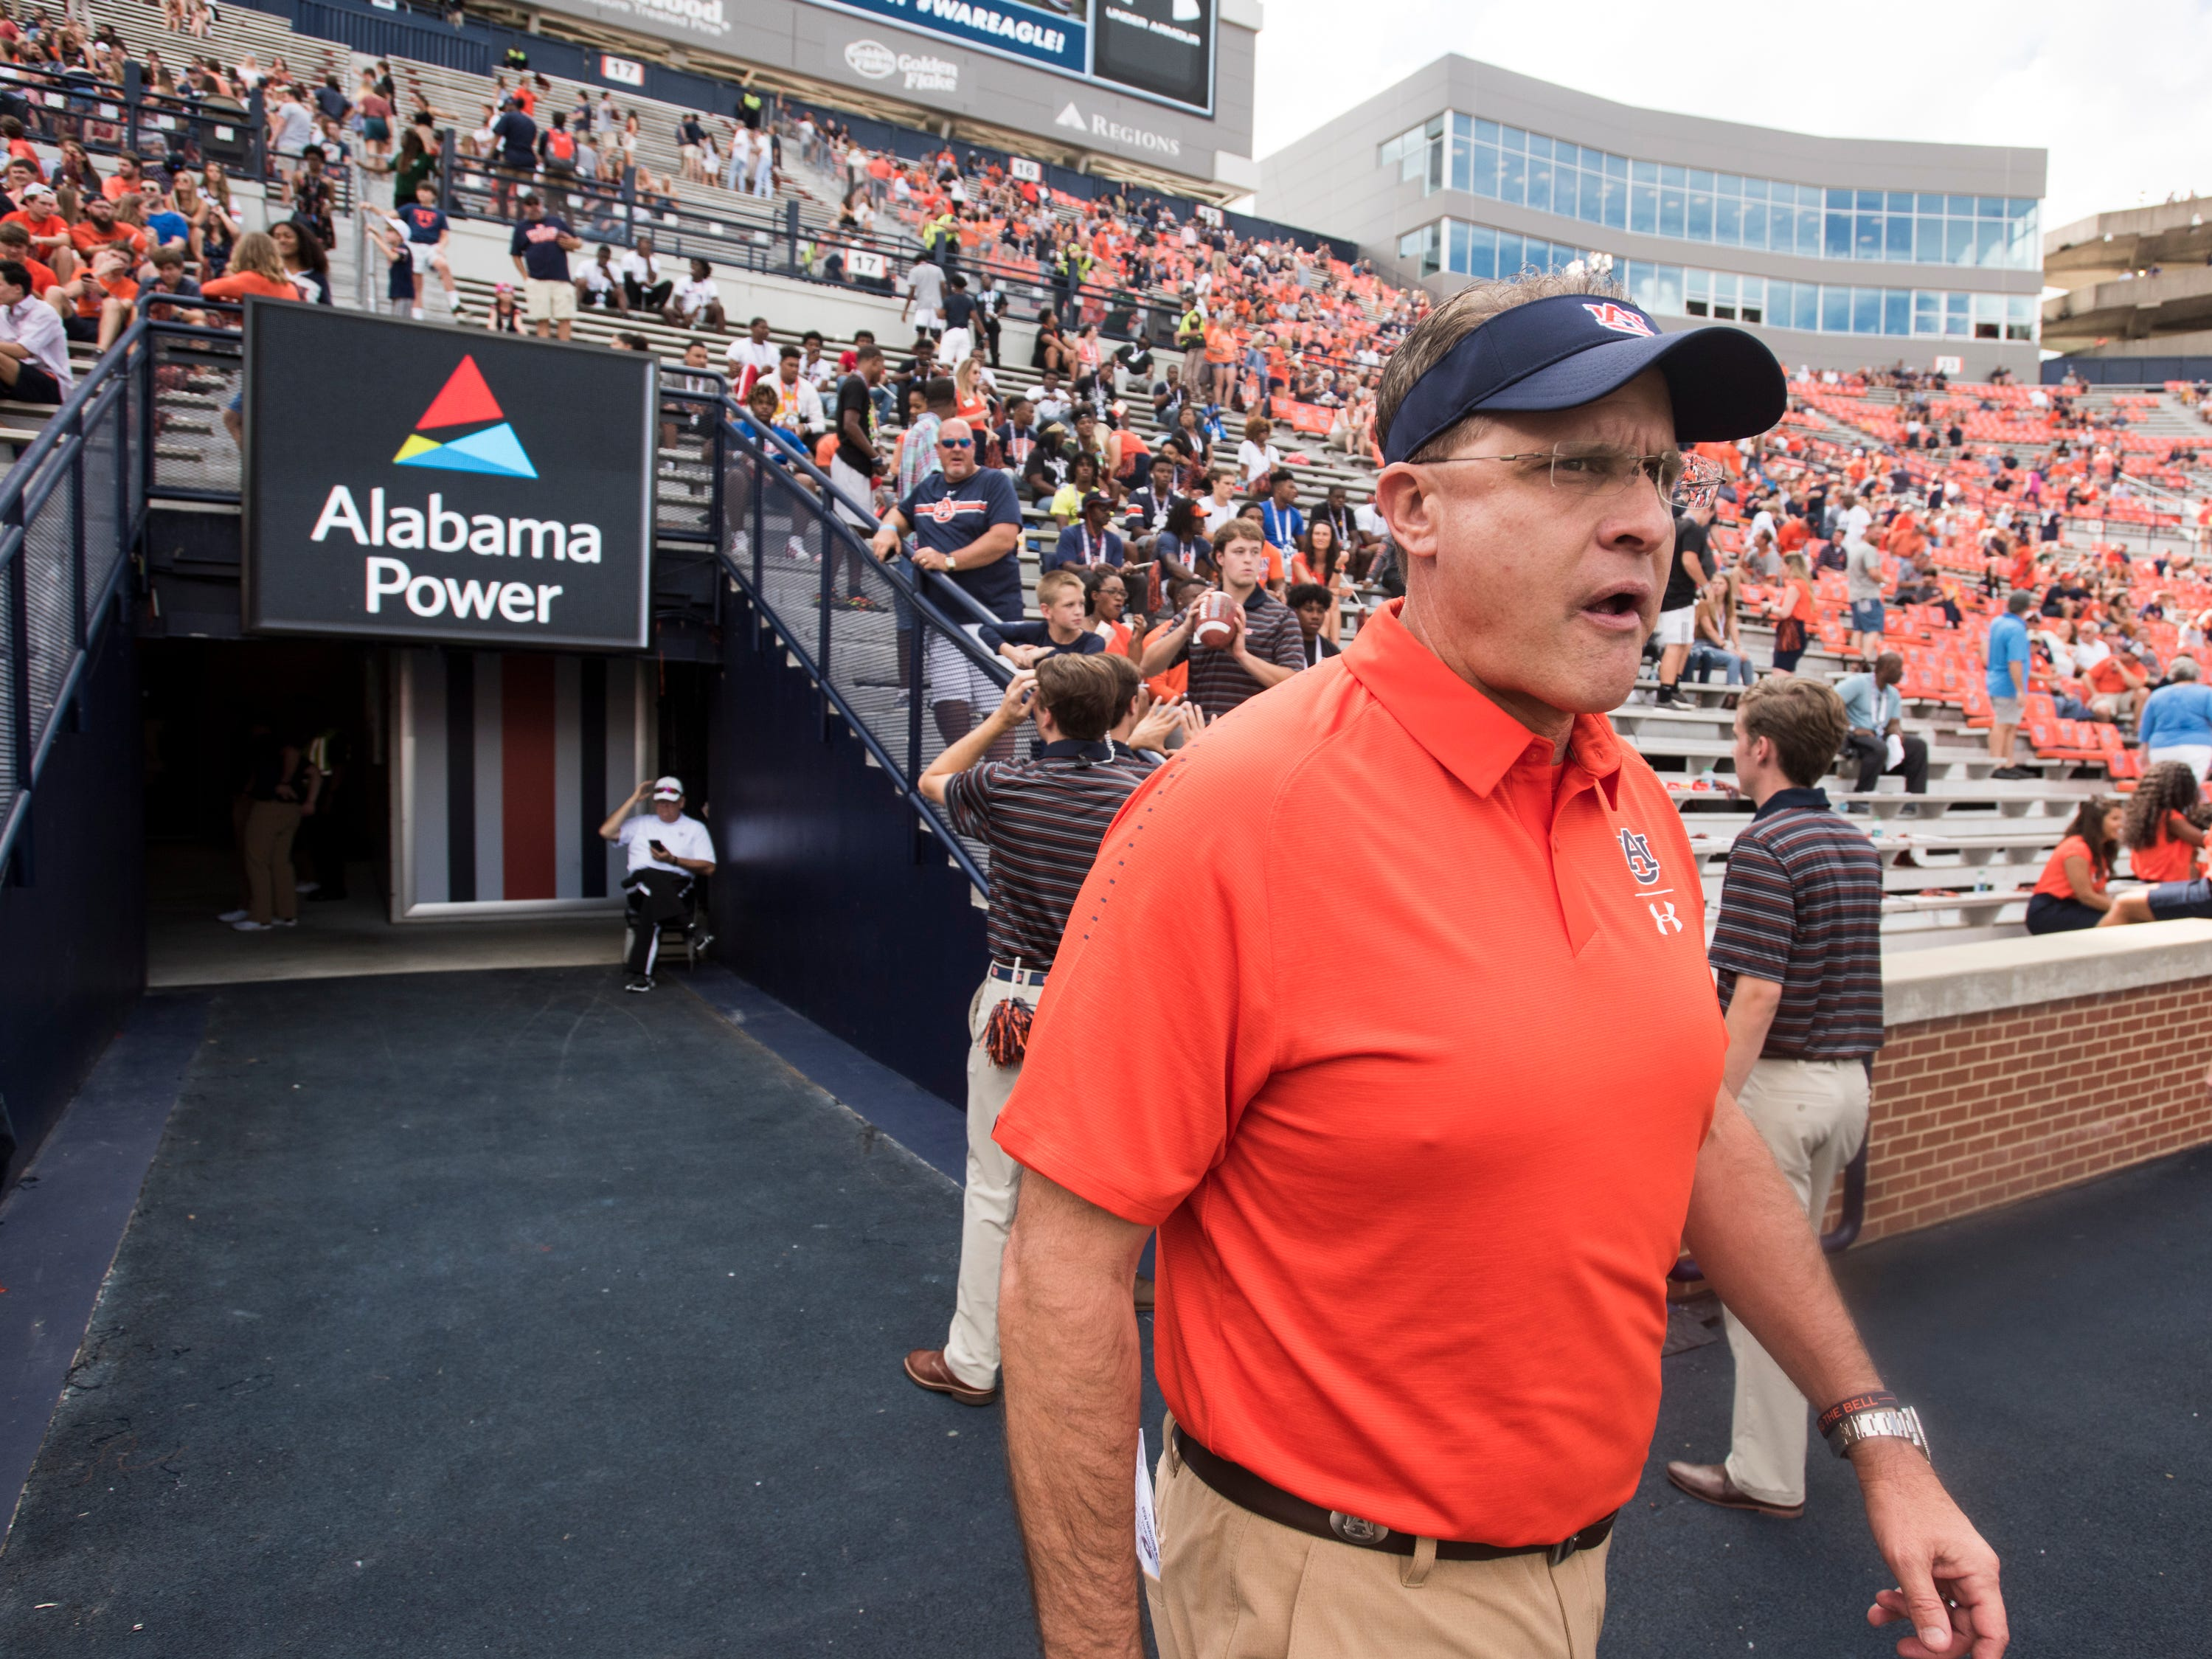 Auburn head coach Gus Malzahn walks on to the field for warm ups before taking on Southern Miss at Jordan-Hare Stadium in Auburn, Ala., on Saturday, Sept. 29, 2018.